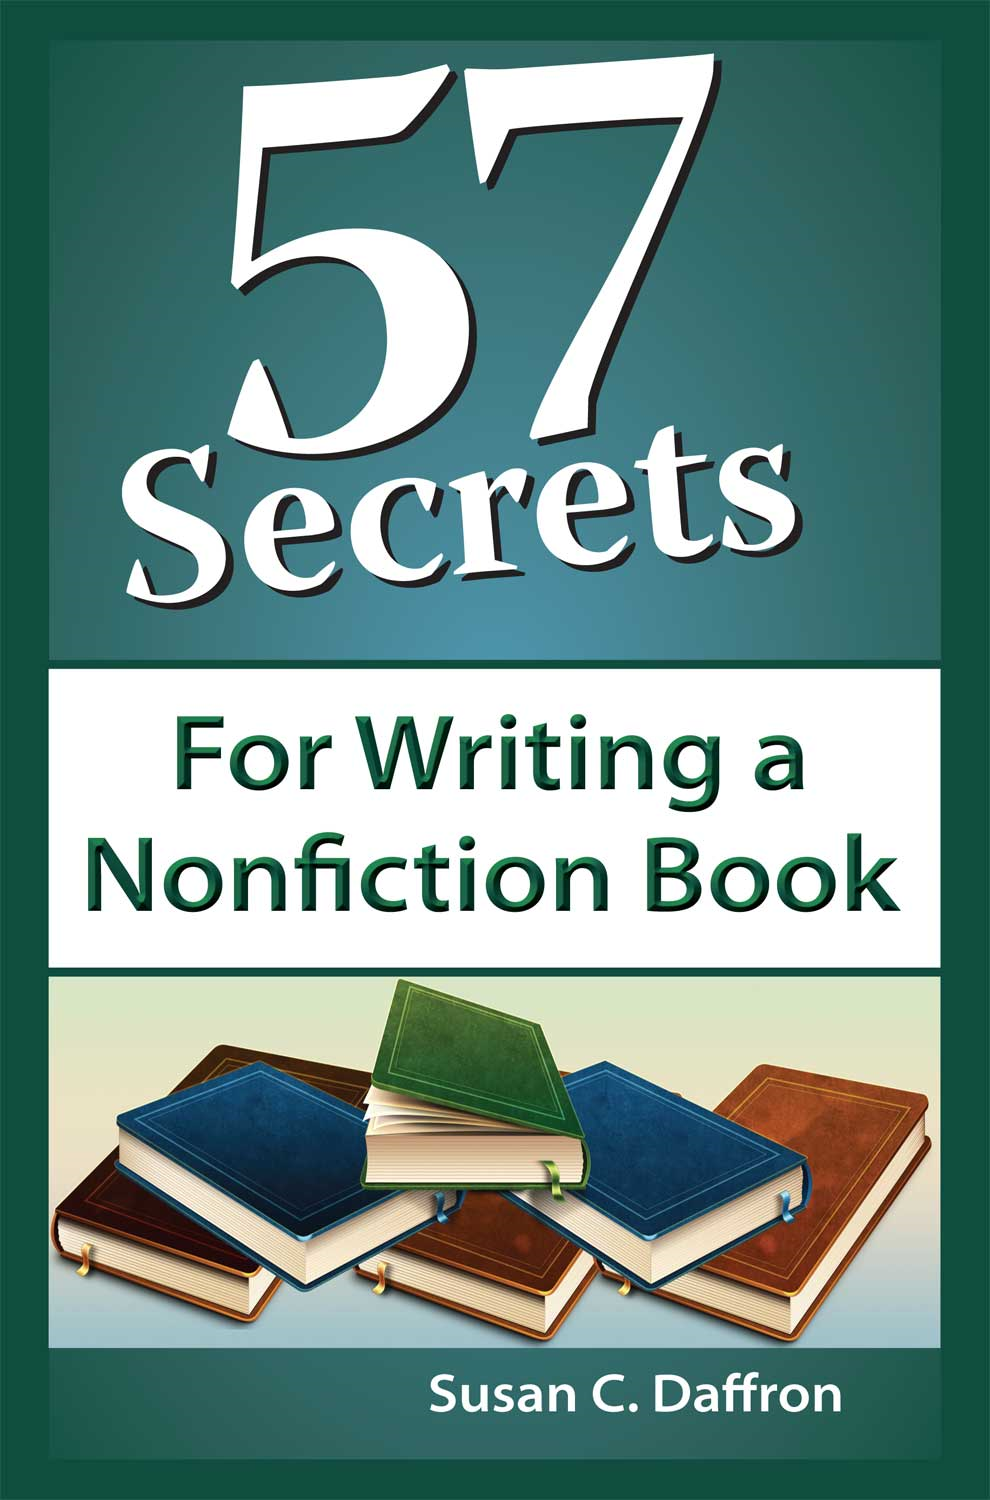 57 Secrets for Writing a Nonfiction Book By: Susan C. Daffron